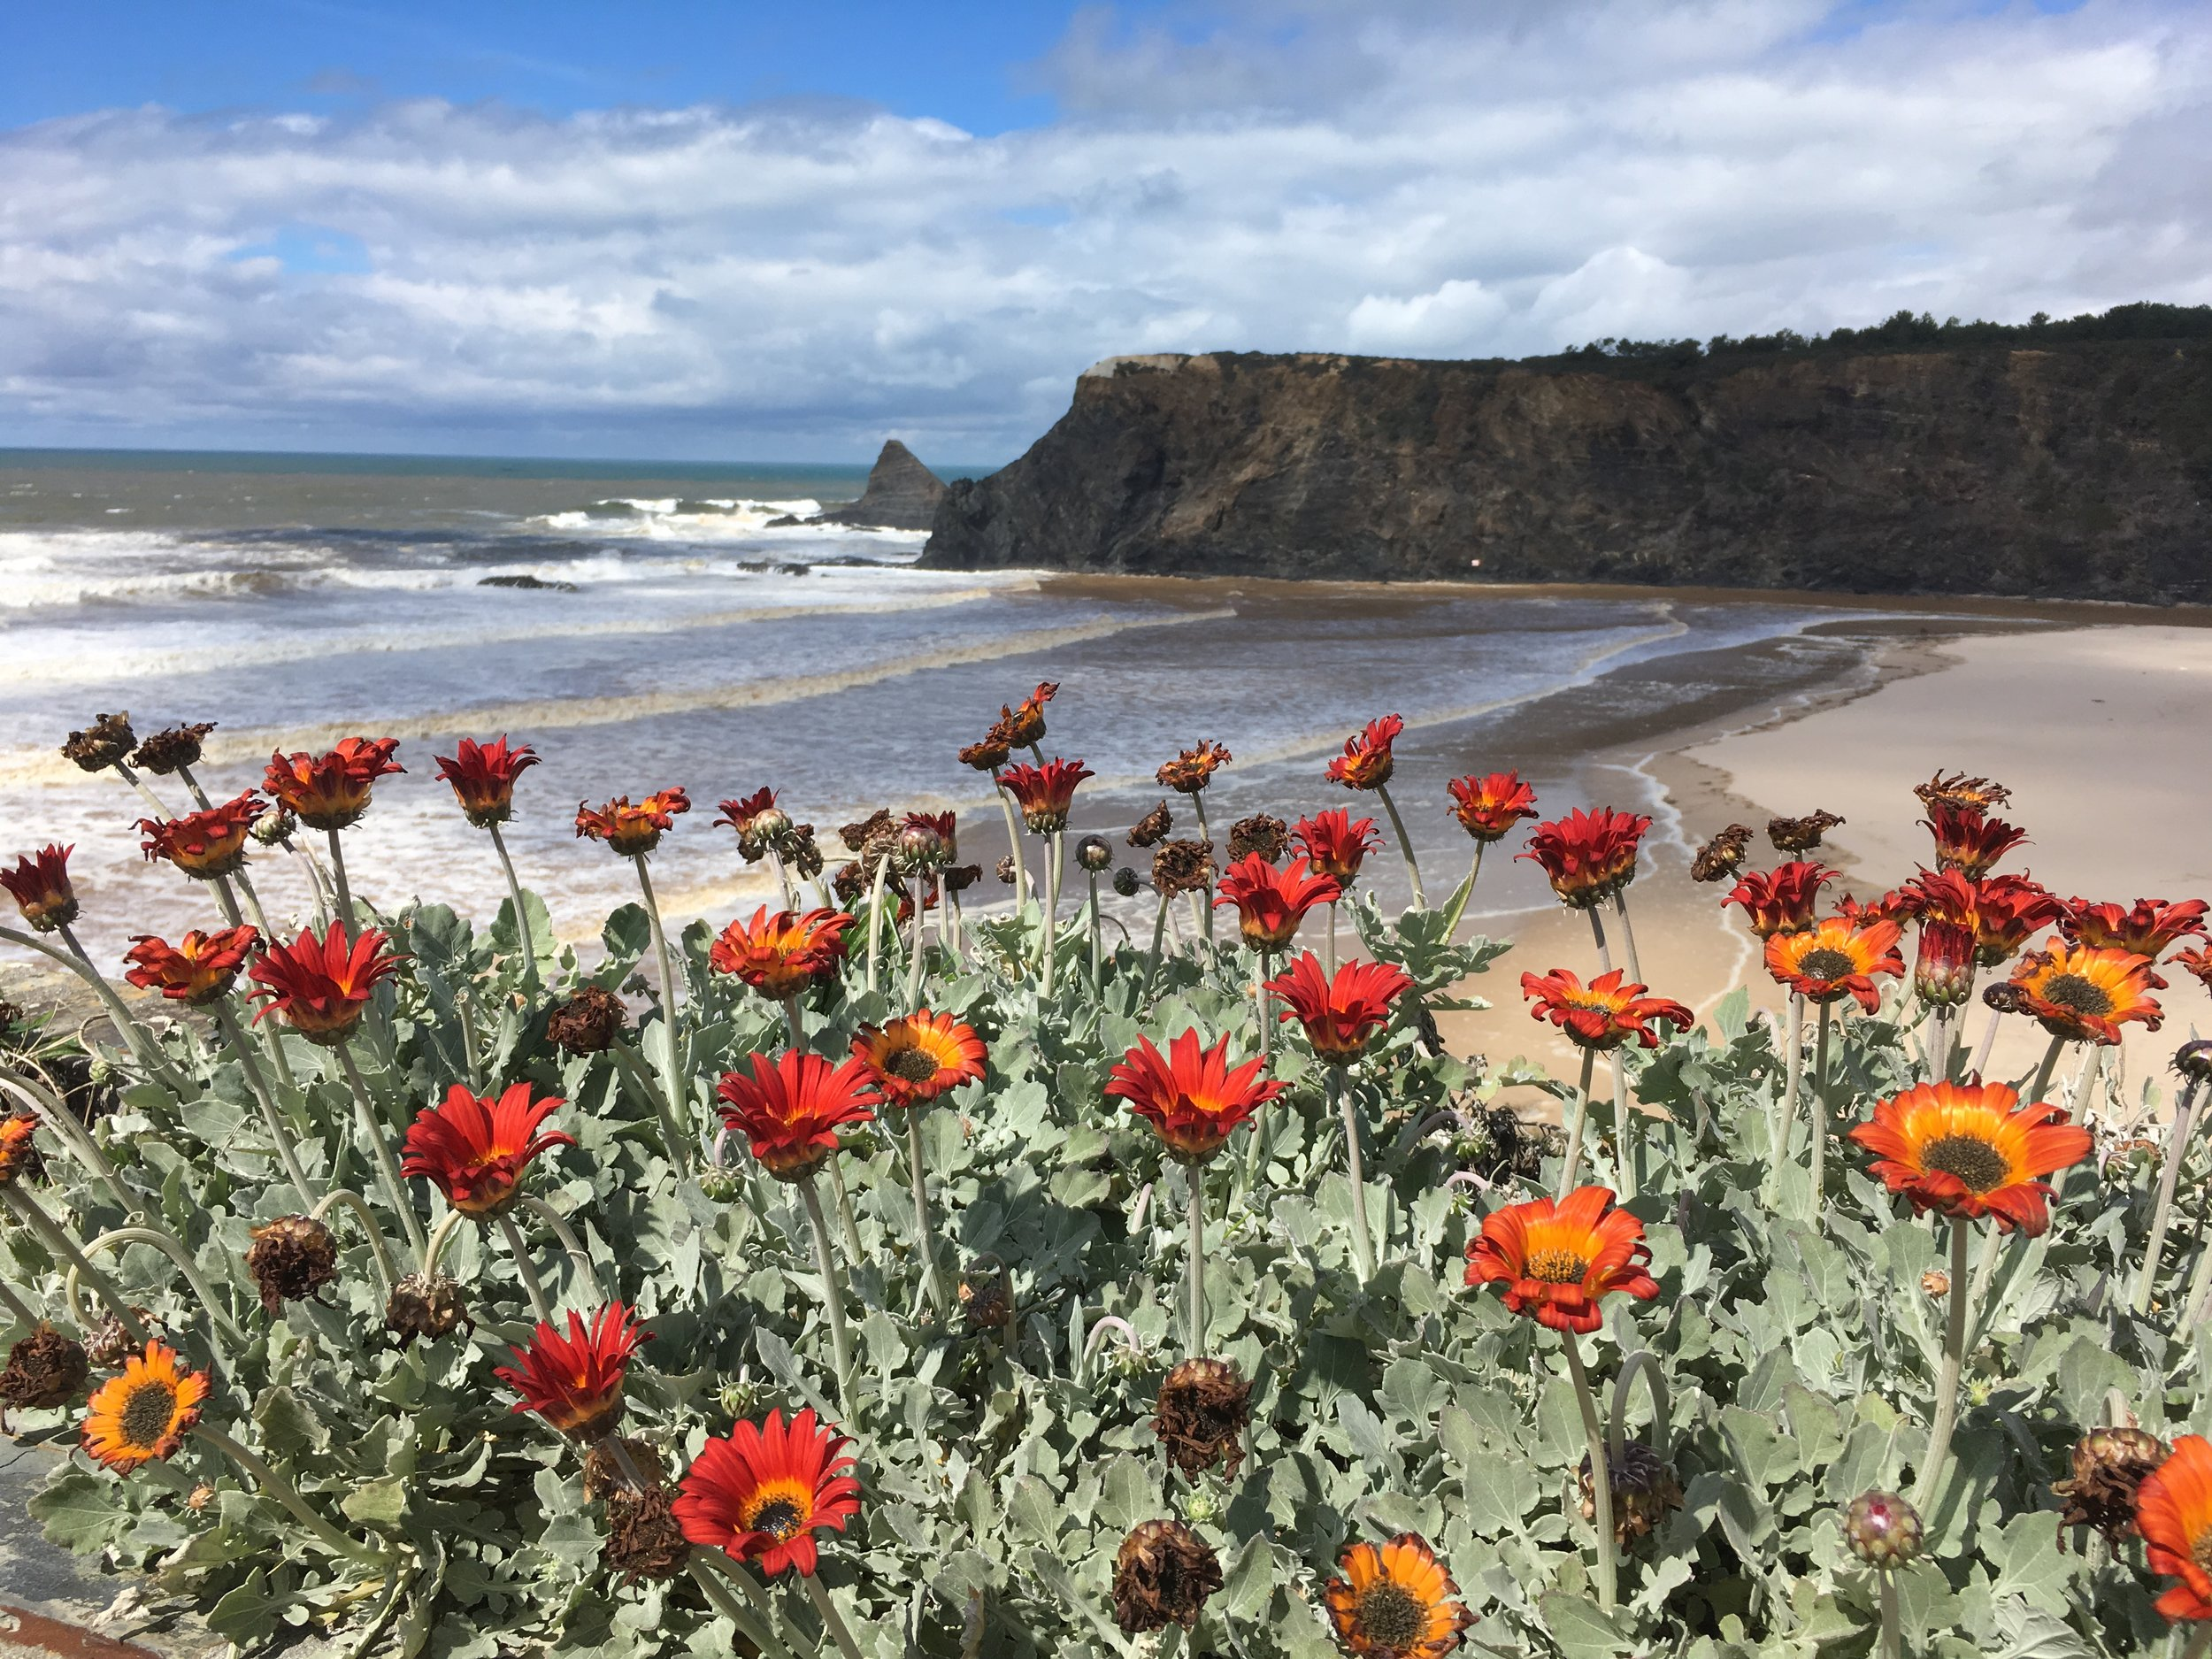 Beach with flowers.jpg